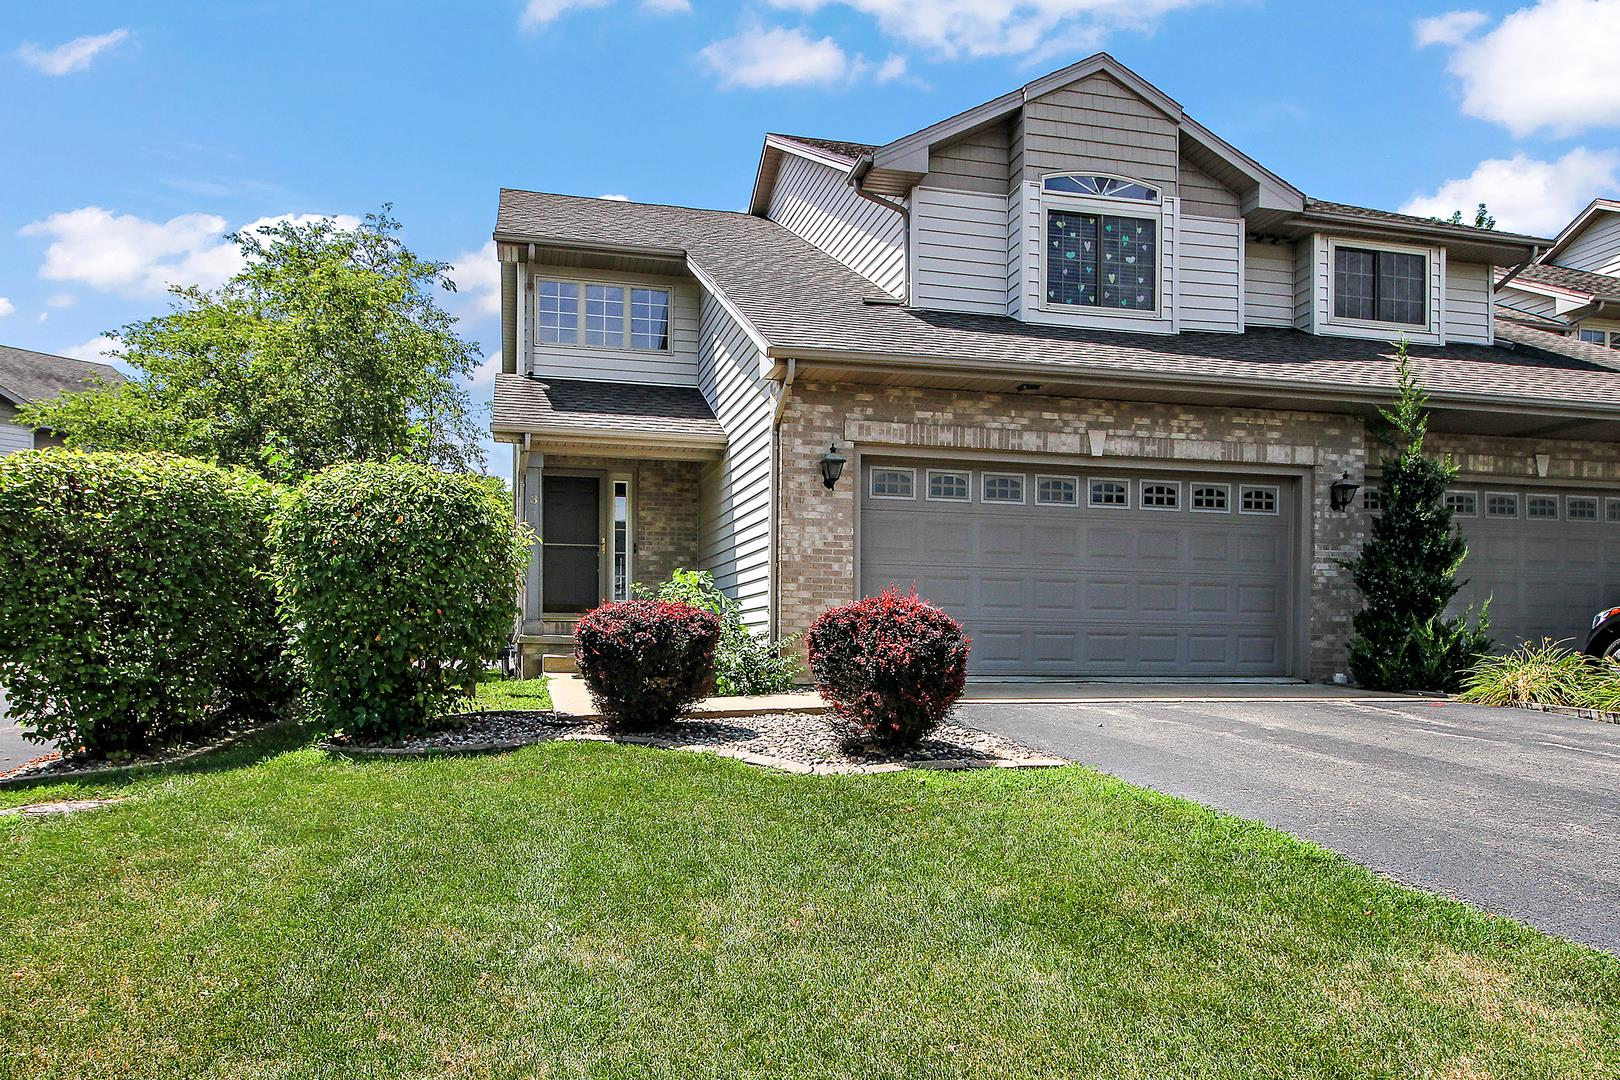 315 William R Latham Sr Drive, Bourbonnais, IL 60914 - #: 10802402